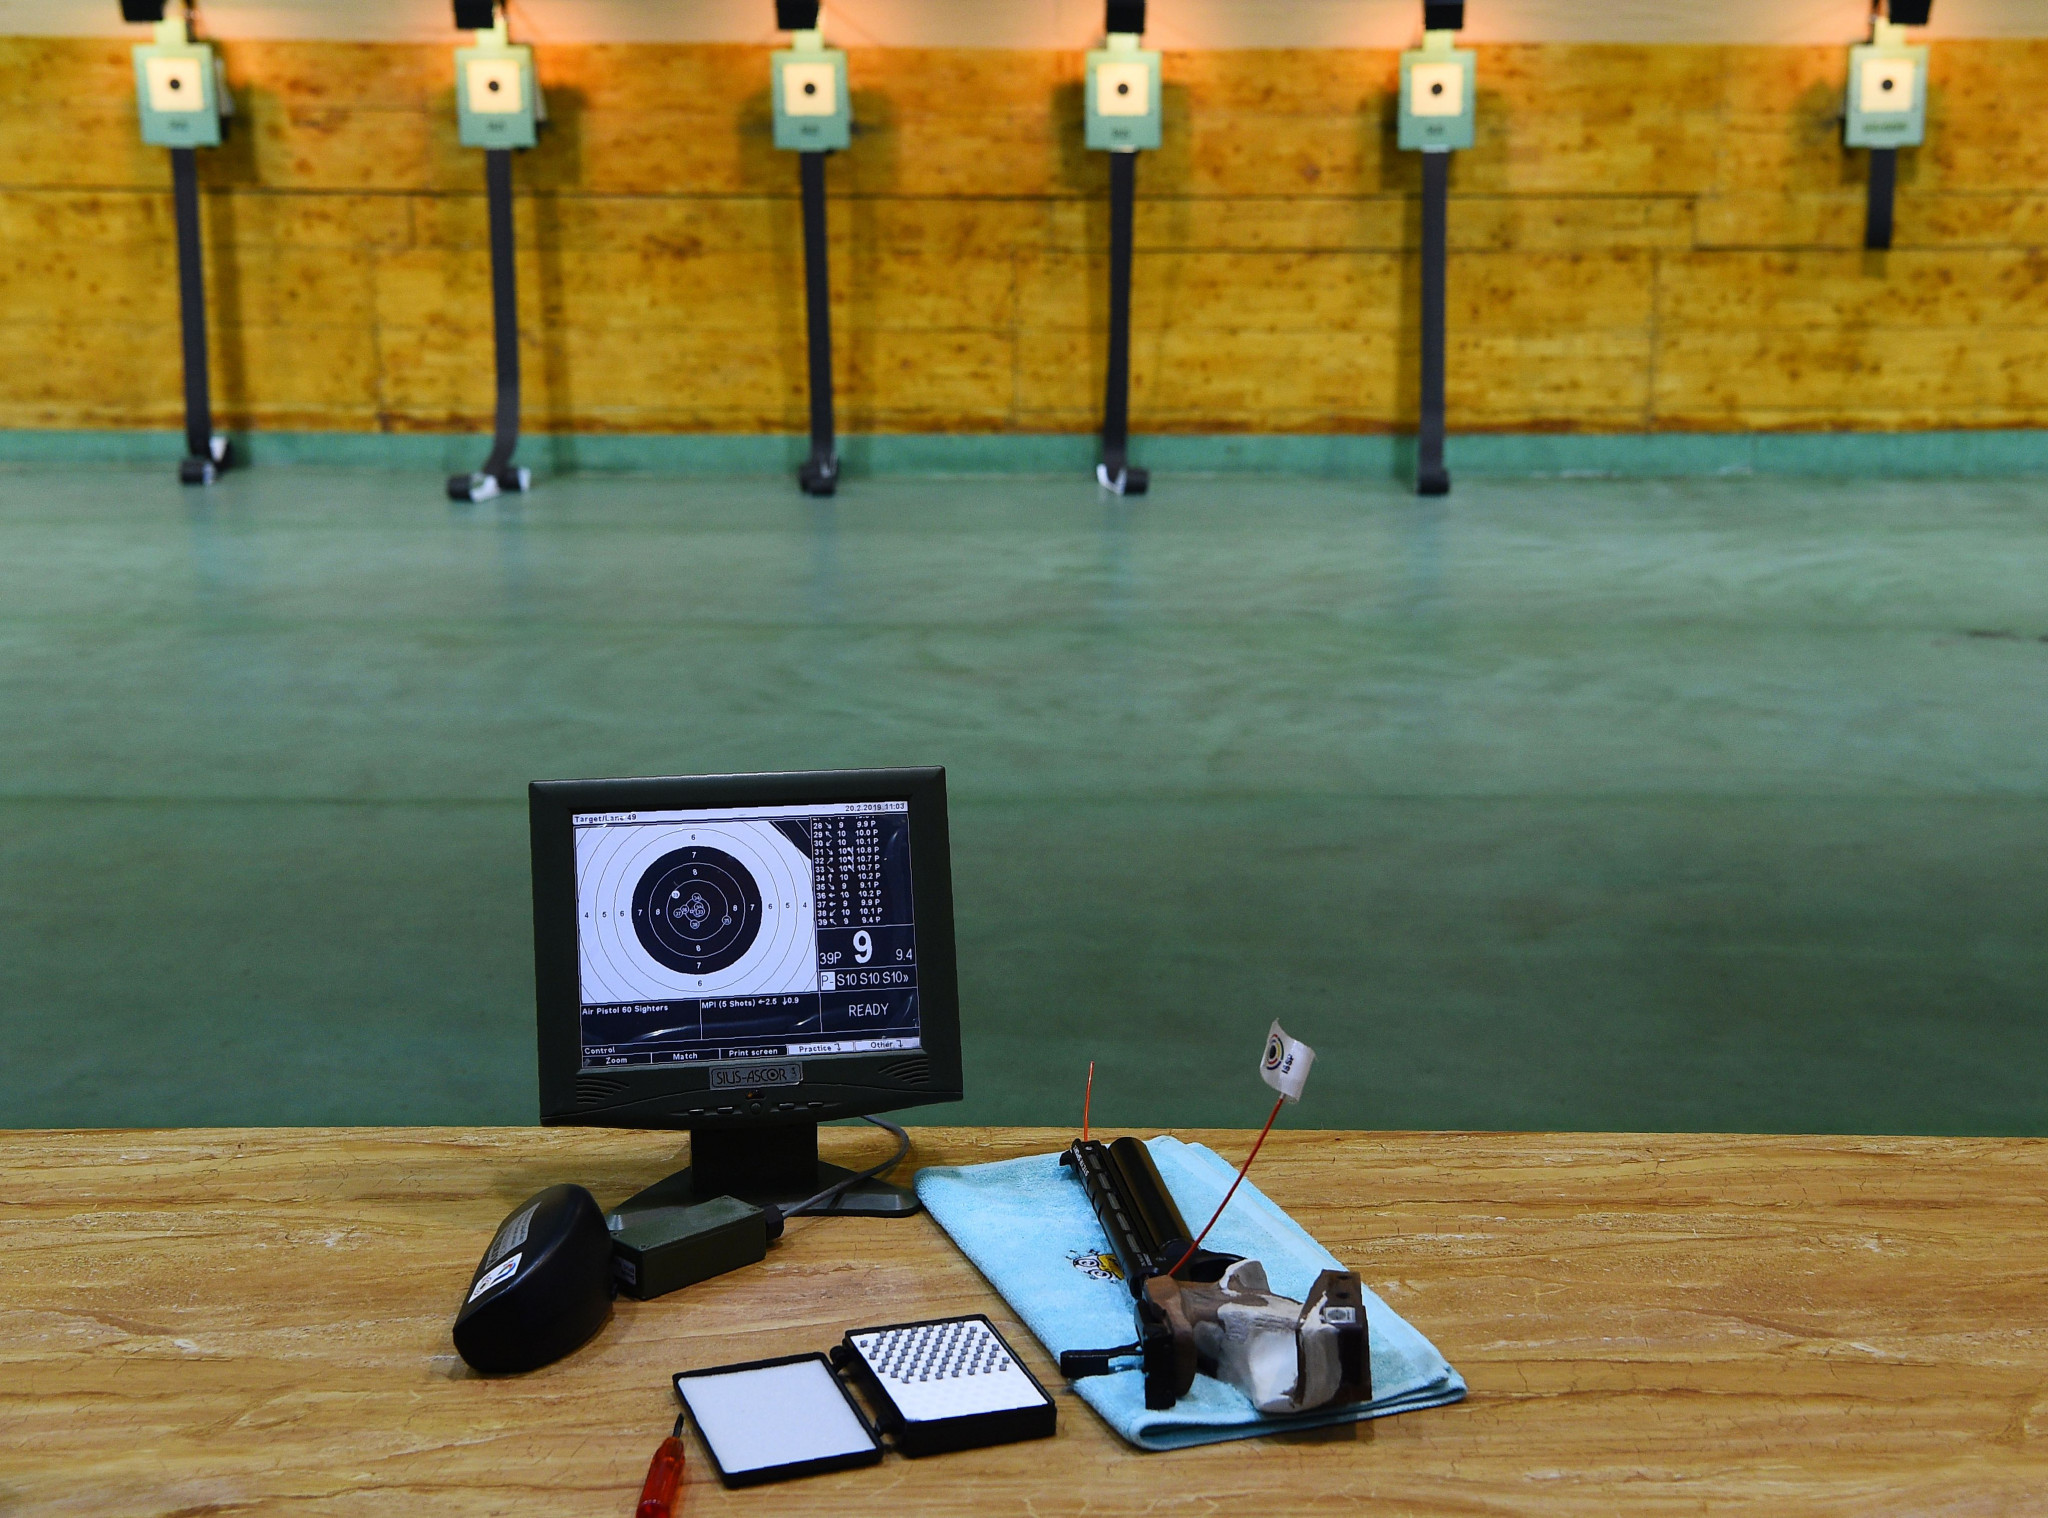 The ISSF say the World Cup in New Delhi will feature as part of Tokyo 2020 qualifying ©Getty Images